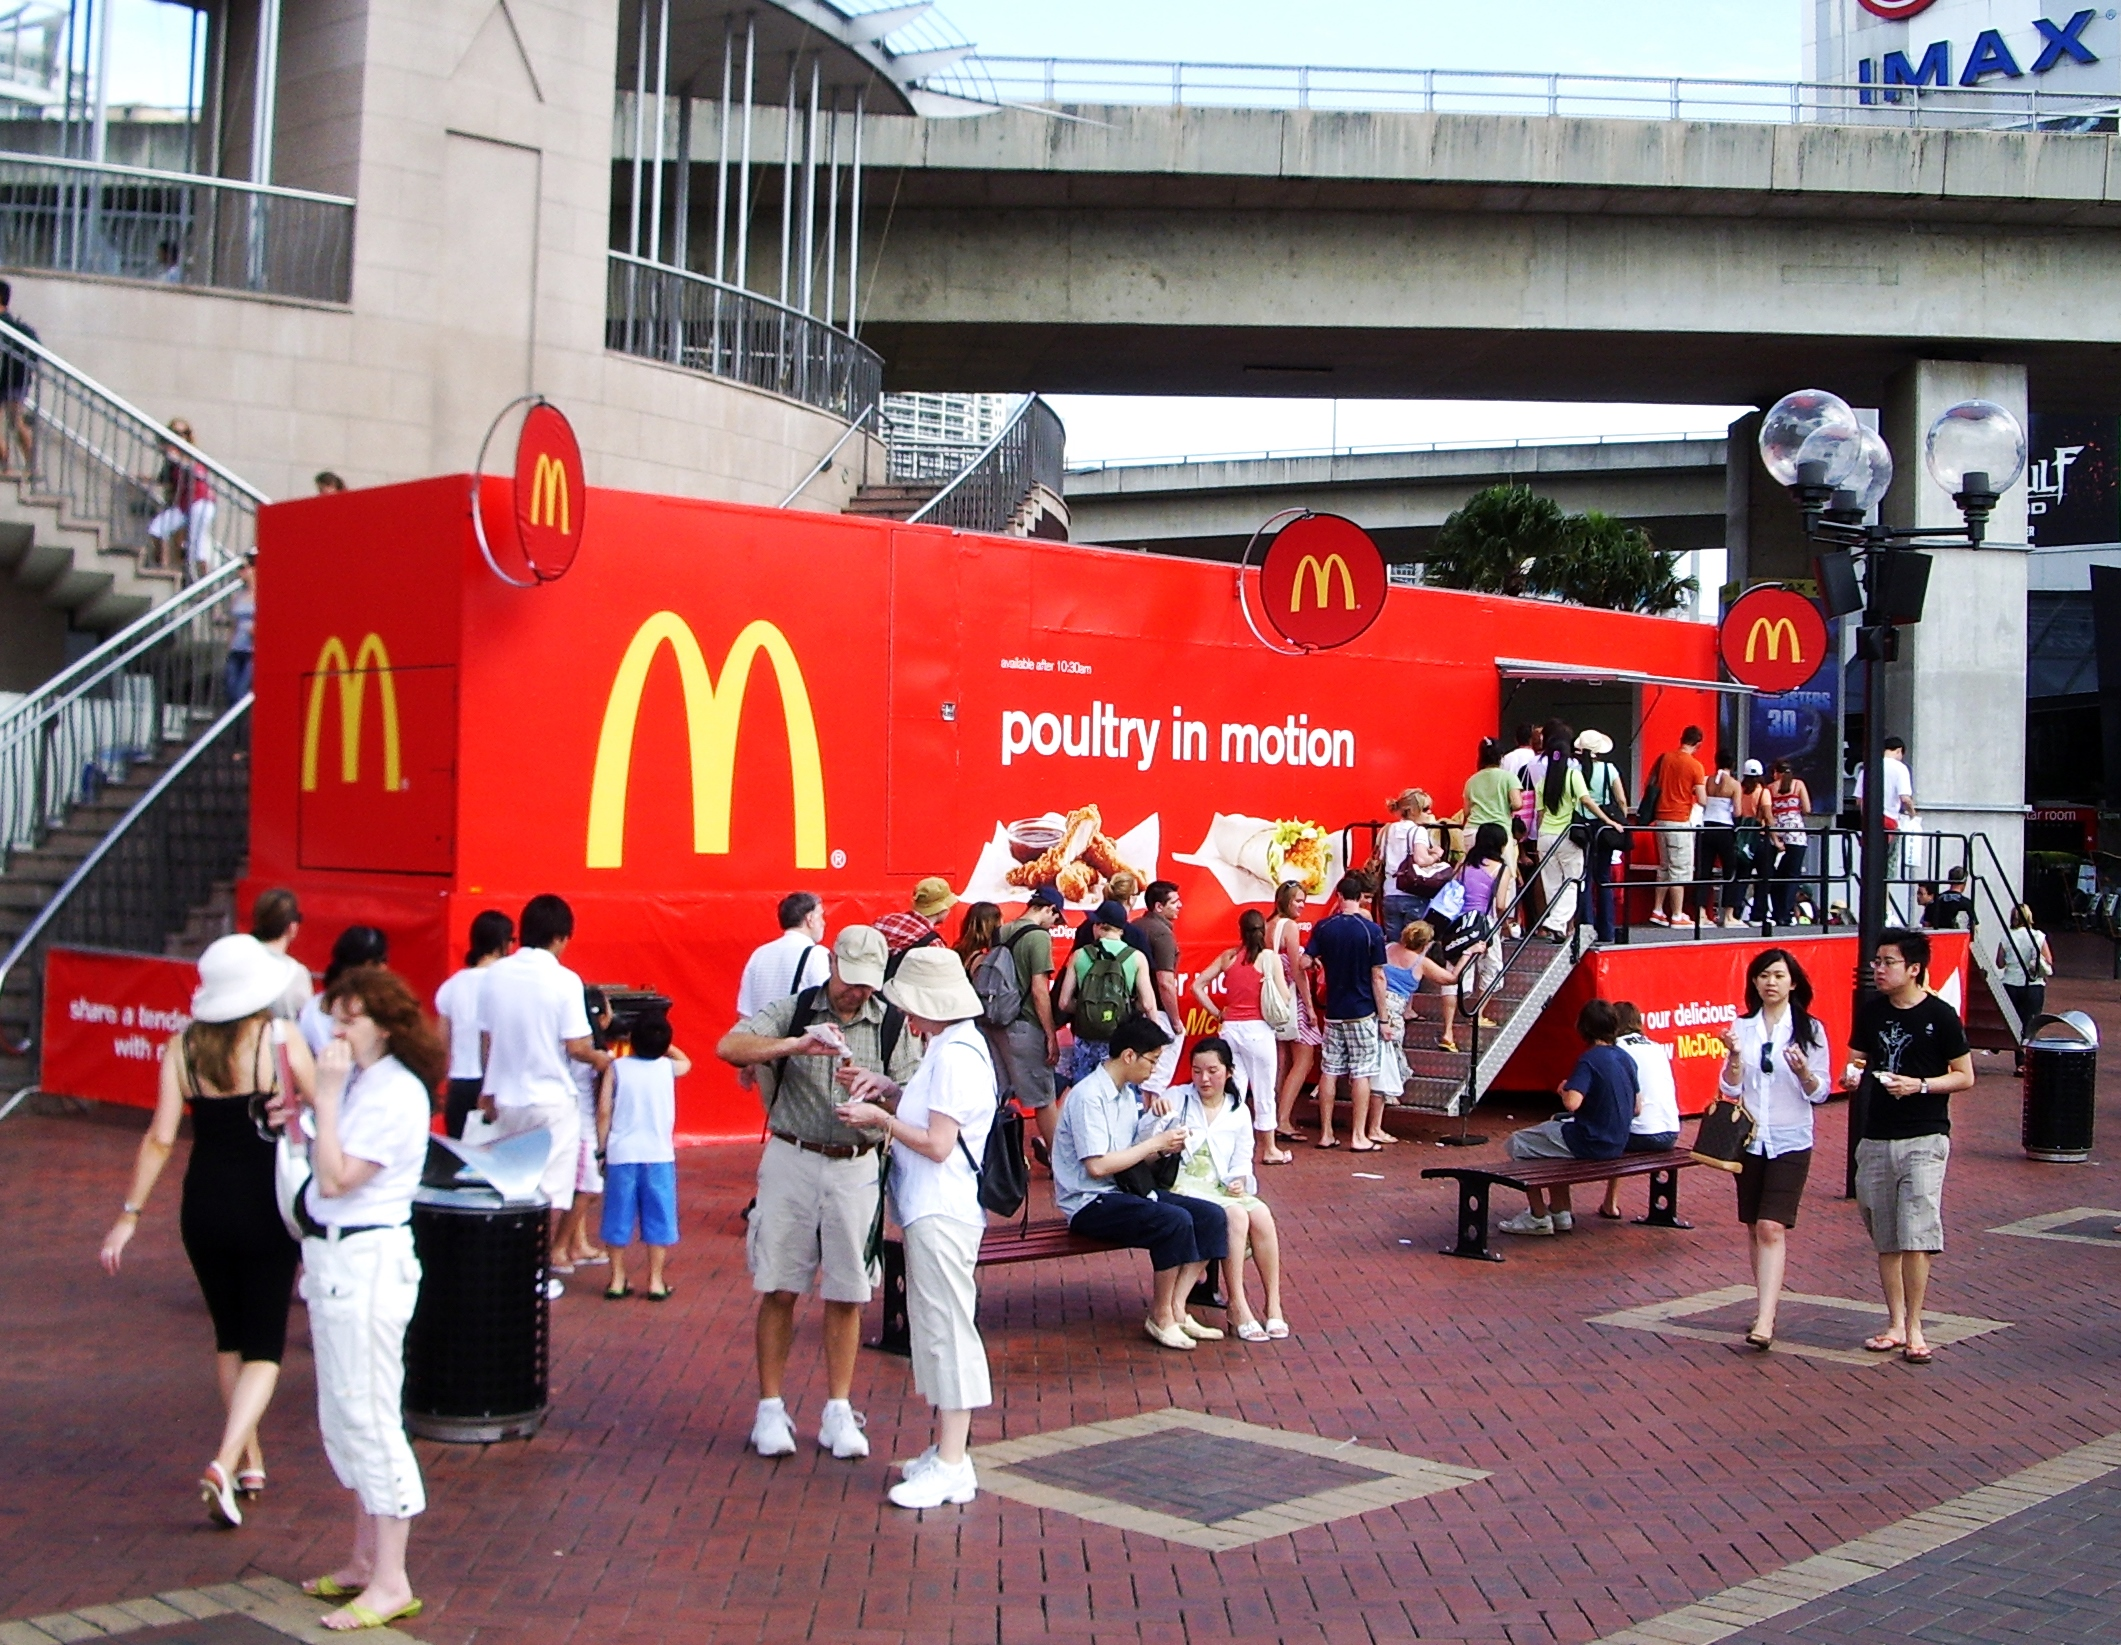 Truck advertising. Vehicle-based events. Custom build. Fleet graphics. Truckside advertising. Experiential marketing. McDonalds poultry in motion campaign. Darling Harbour Sydney.